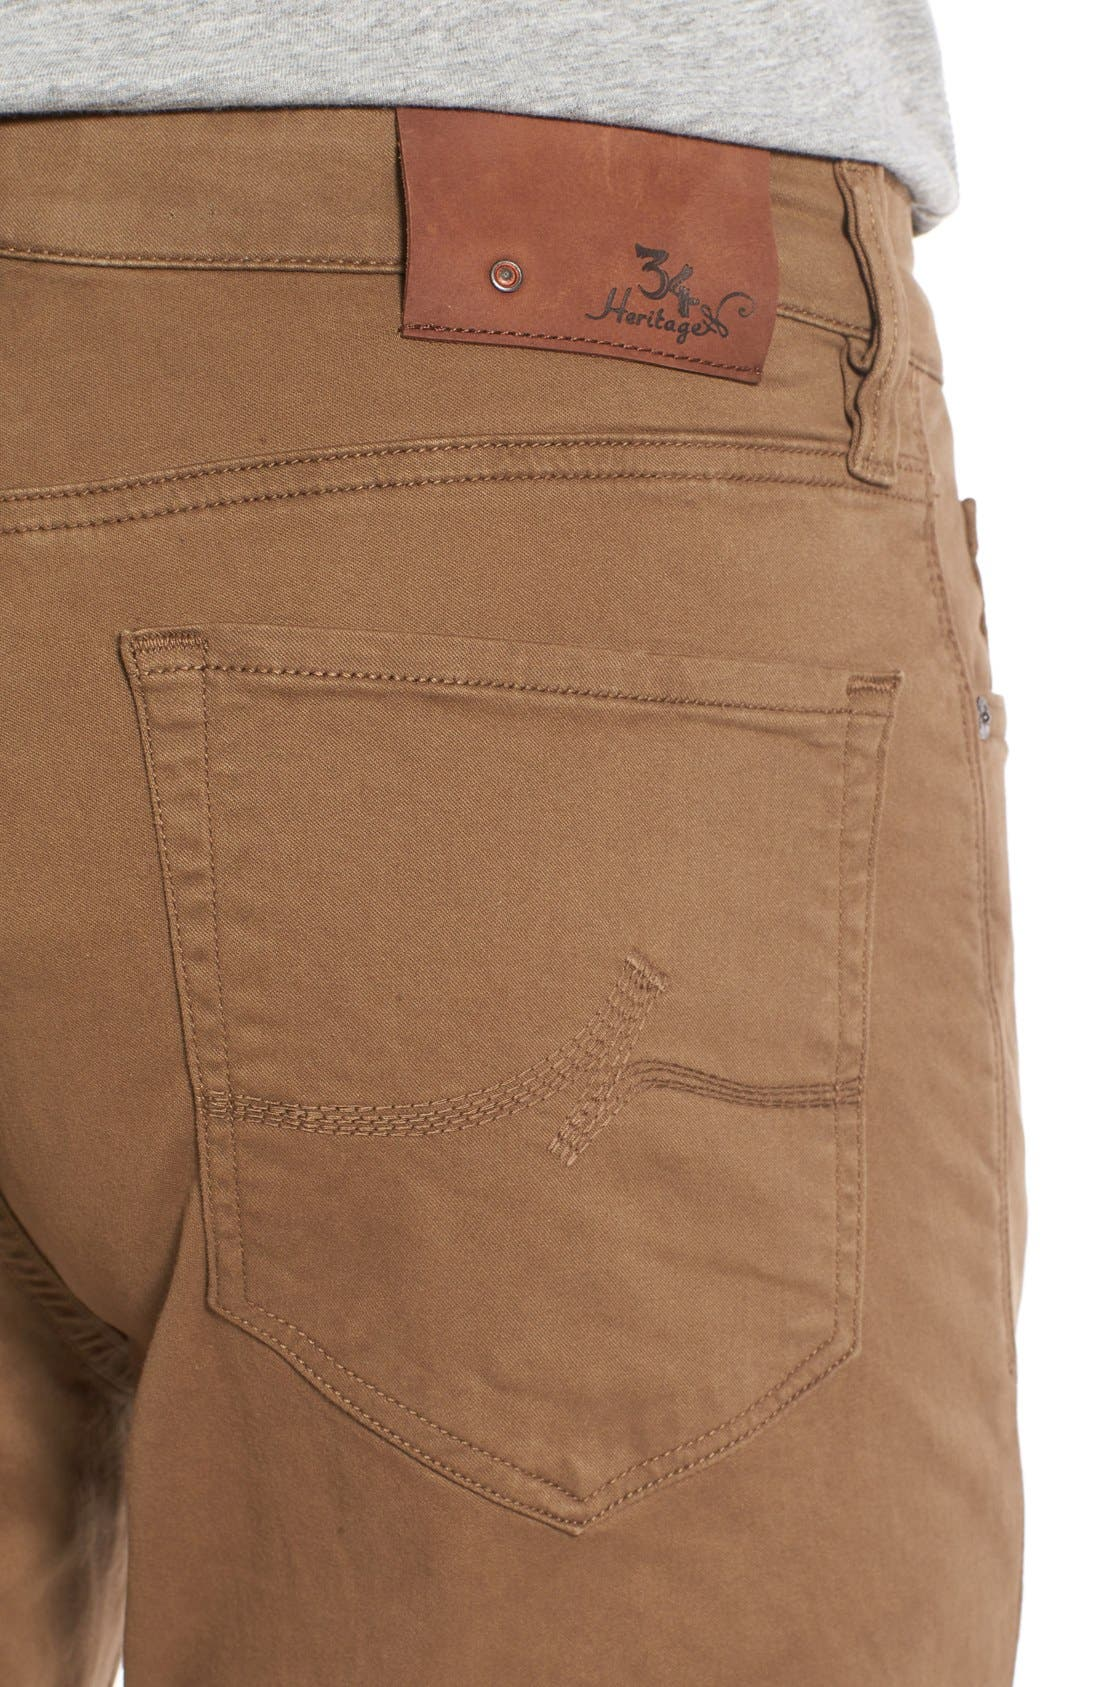 Alternate Image 4  - 34 Heritage 'Charisma' Relaxed Fit Jeans (Tobacco Twill) (Online Only)